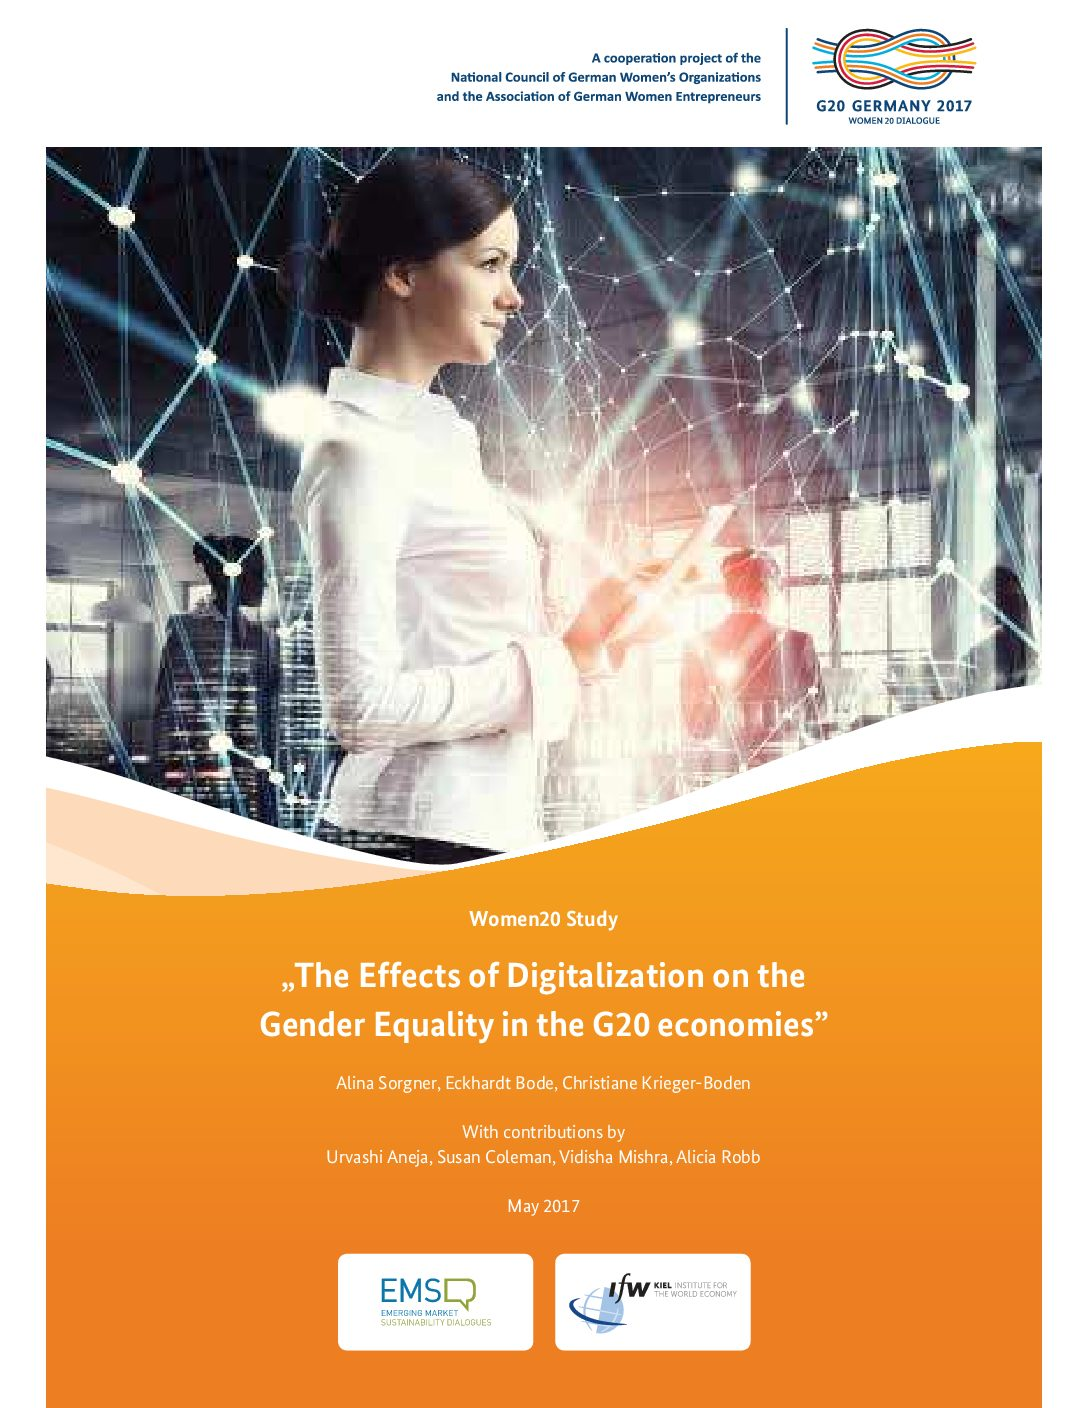 """Update: Full Version of W20 Study """"The Effects of Digitalisation on Gender Equality in the G20 Economies"""" Released"""